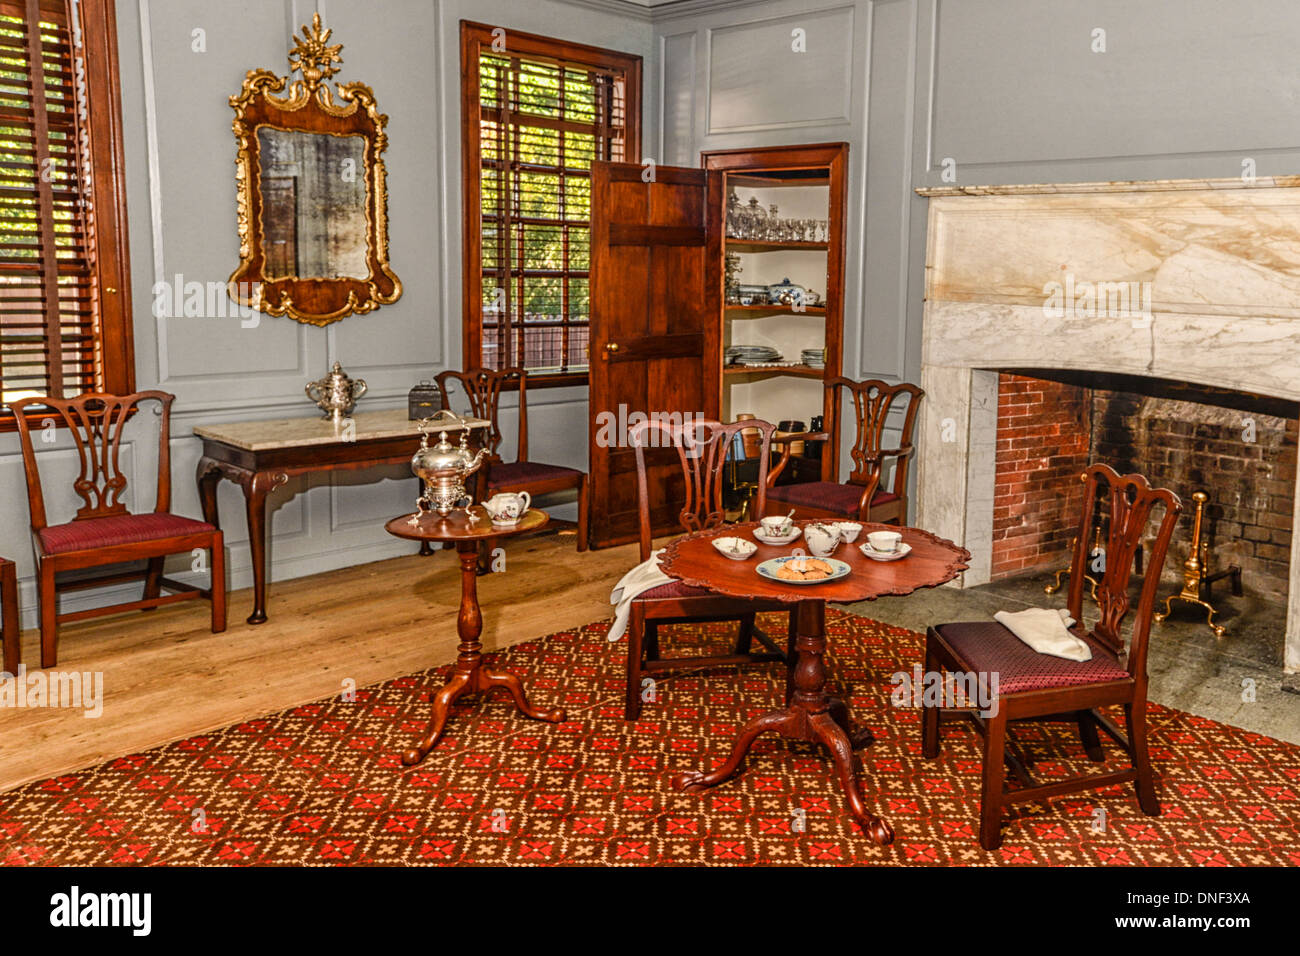 home decorators collection virginian peyton randolph house interior room and furnishings in 11477